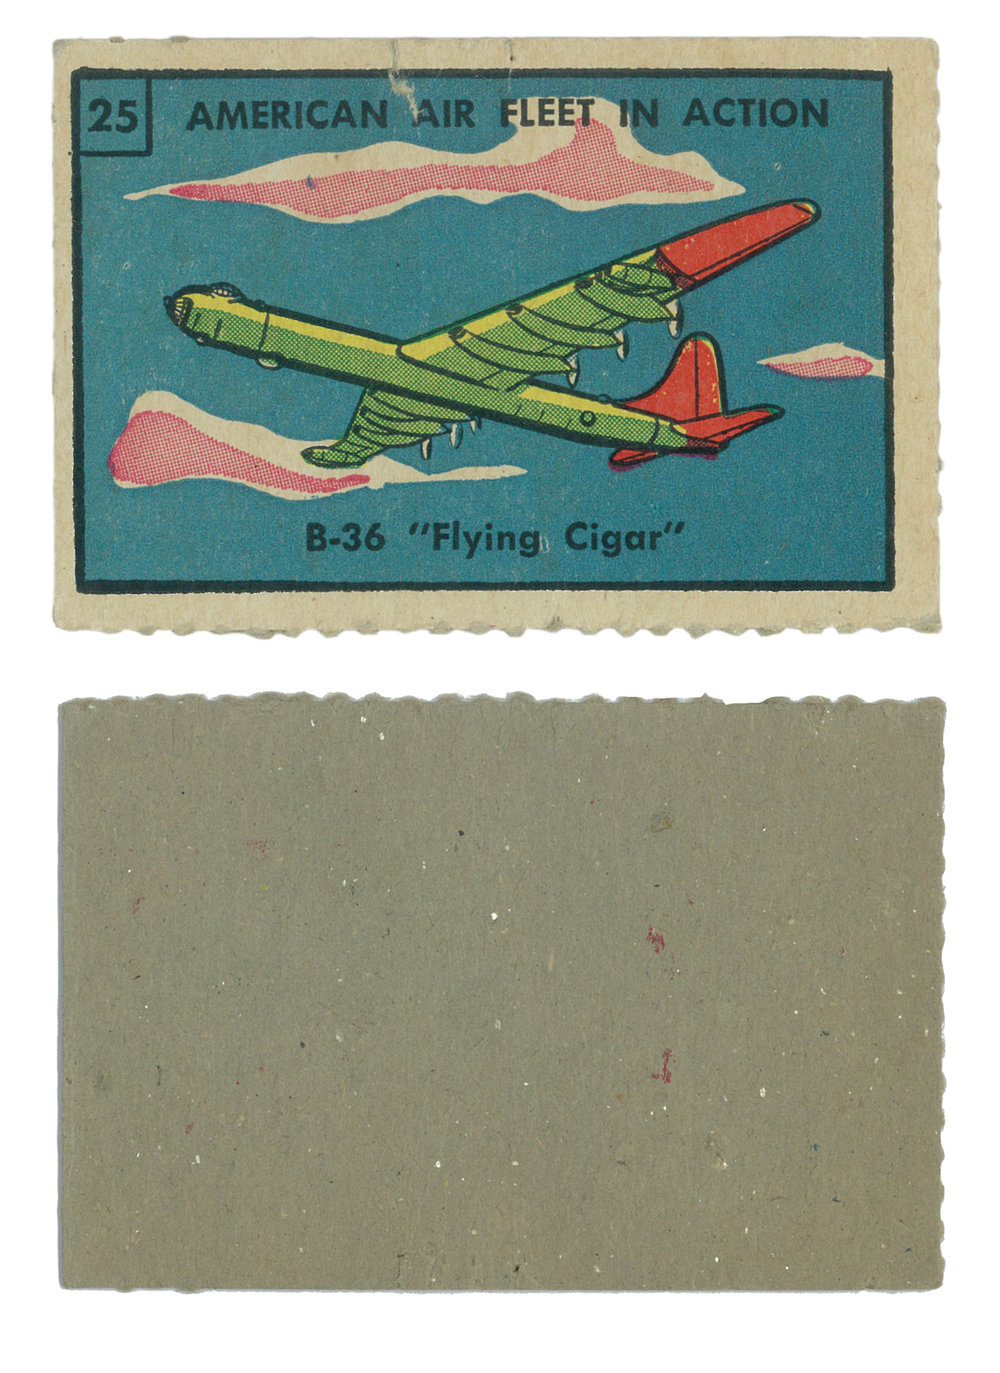 "B-36 ""Flying Cigar"" #25 Series: American Air Fleet in Action Card Dimensions: 2 × 3 inches USA - 1950/60's"